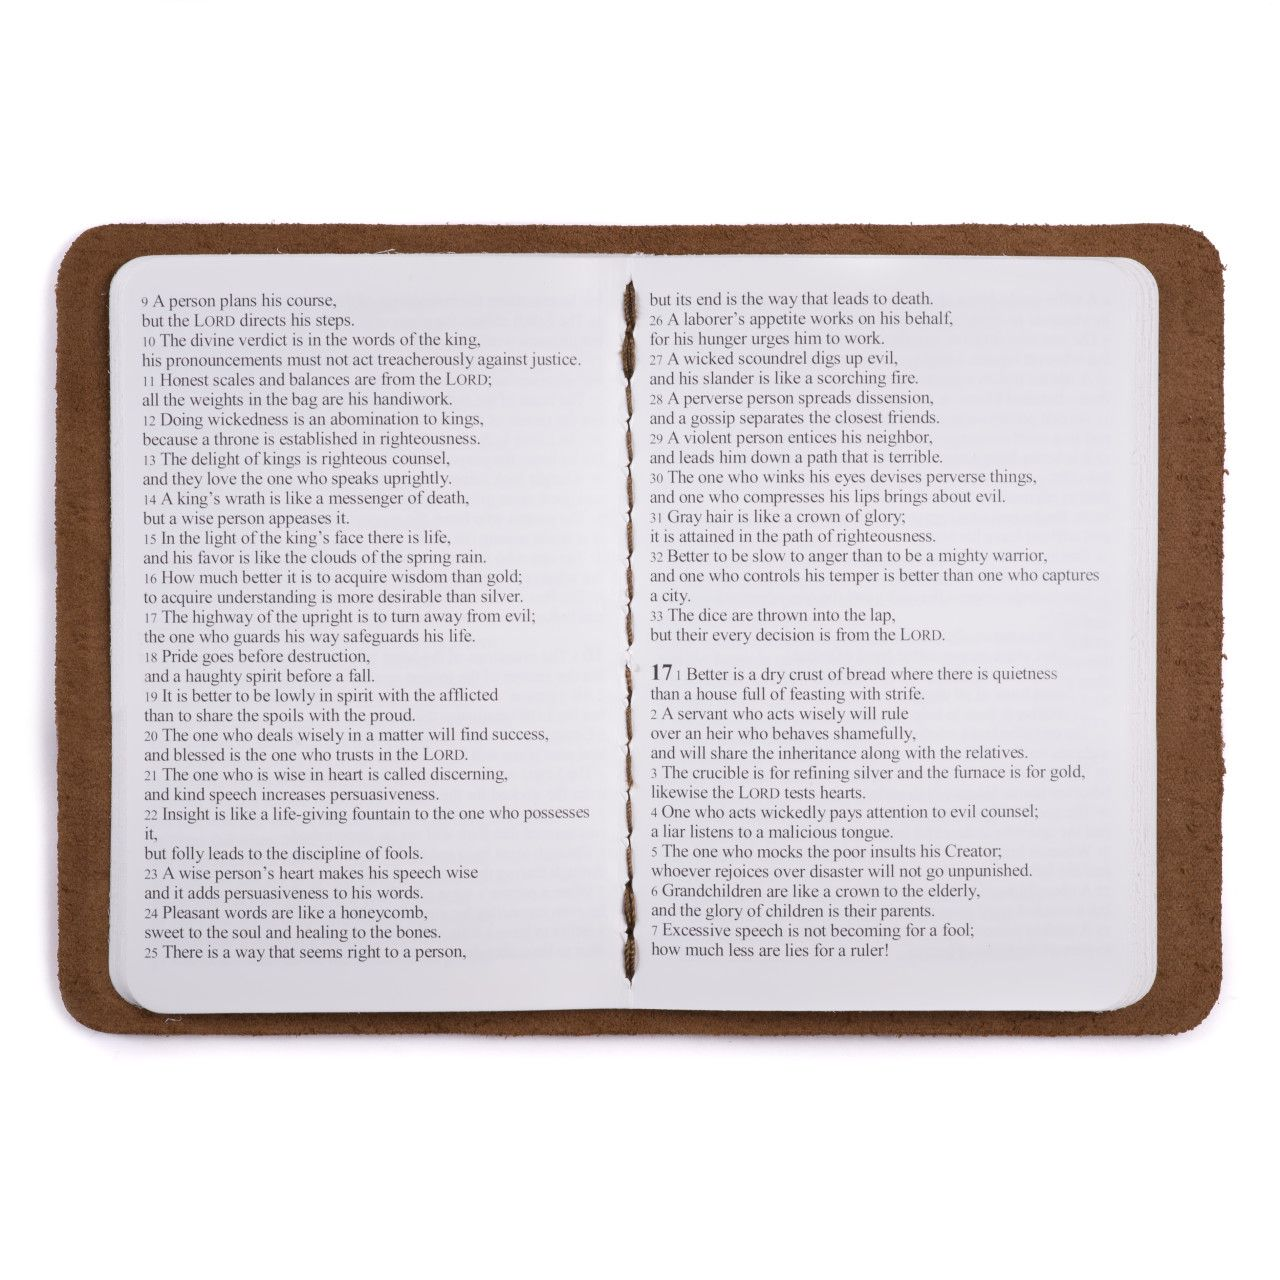 leather book of proverbs in dark coffee brown leather with the gospel